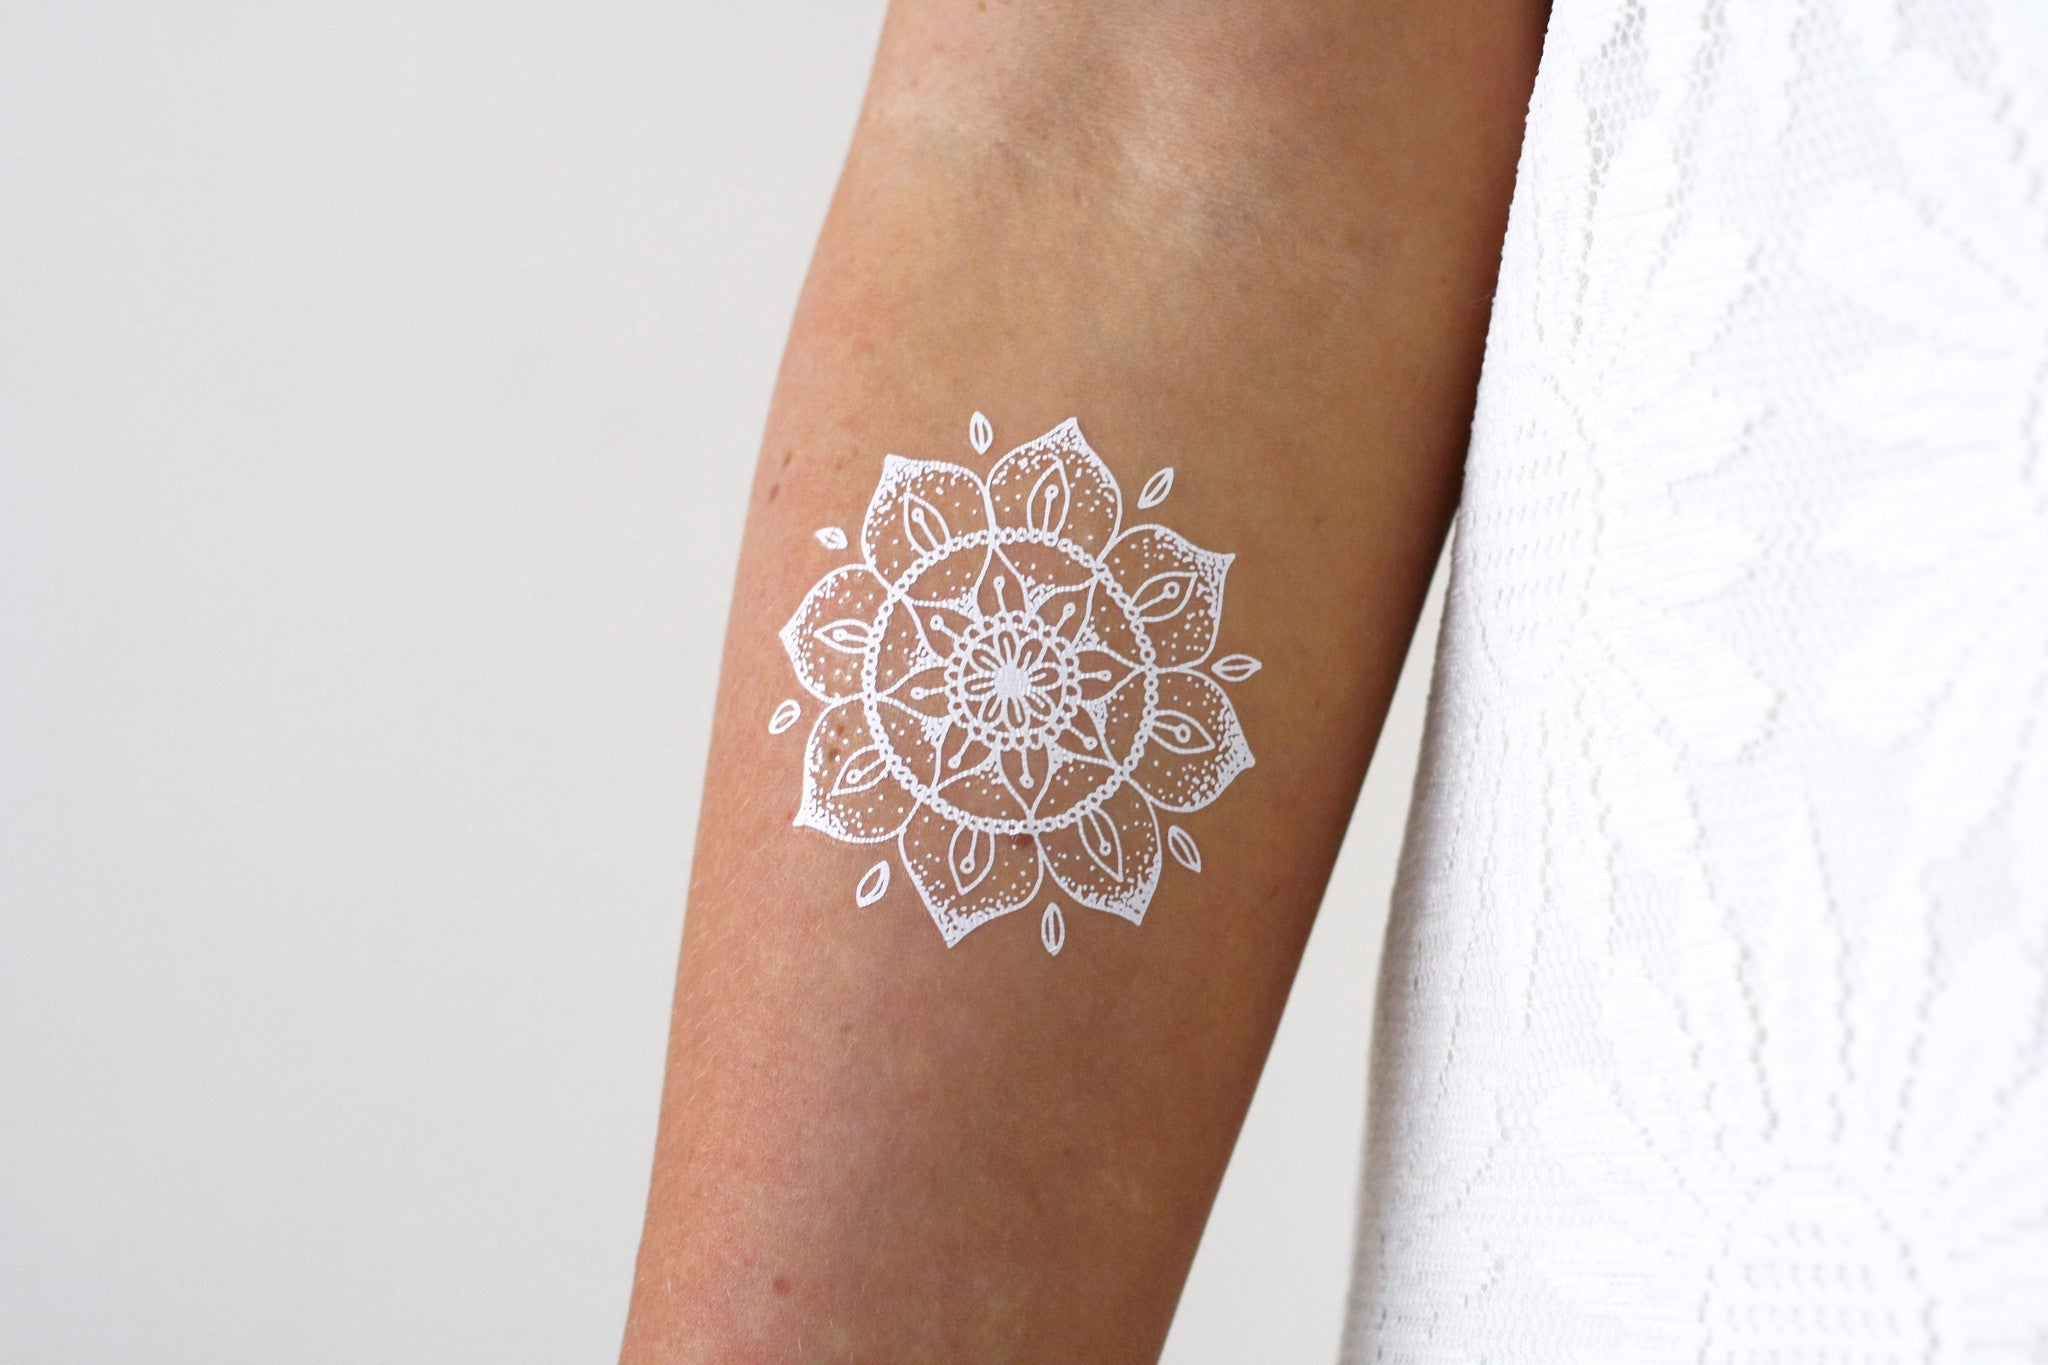 white mandala temporary tattoo tattoorary. Black Bedroom Furniture Sets. Home Design Ideas